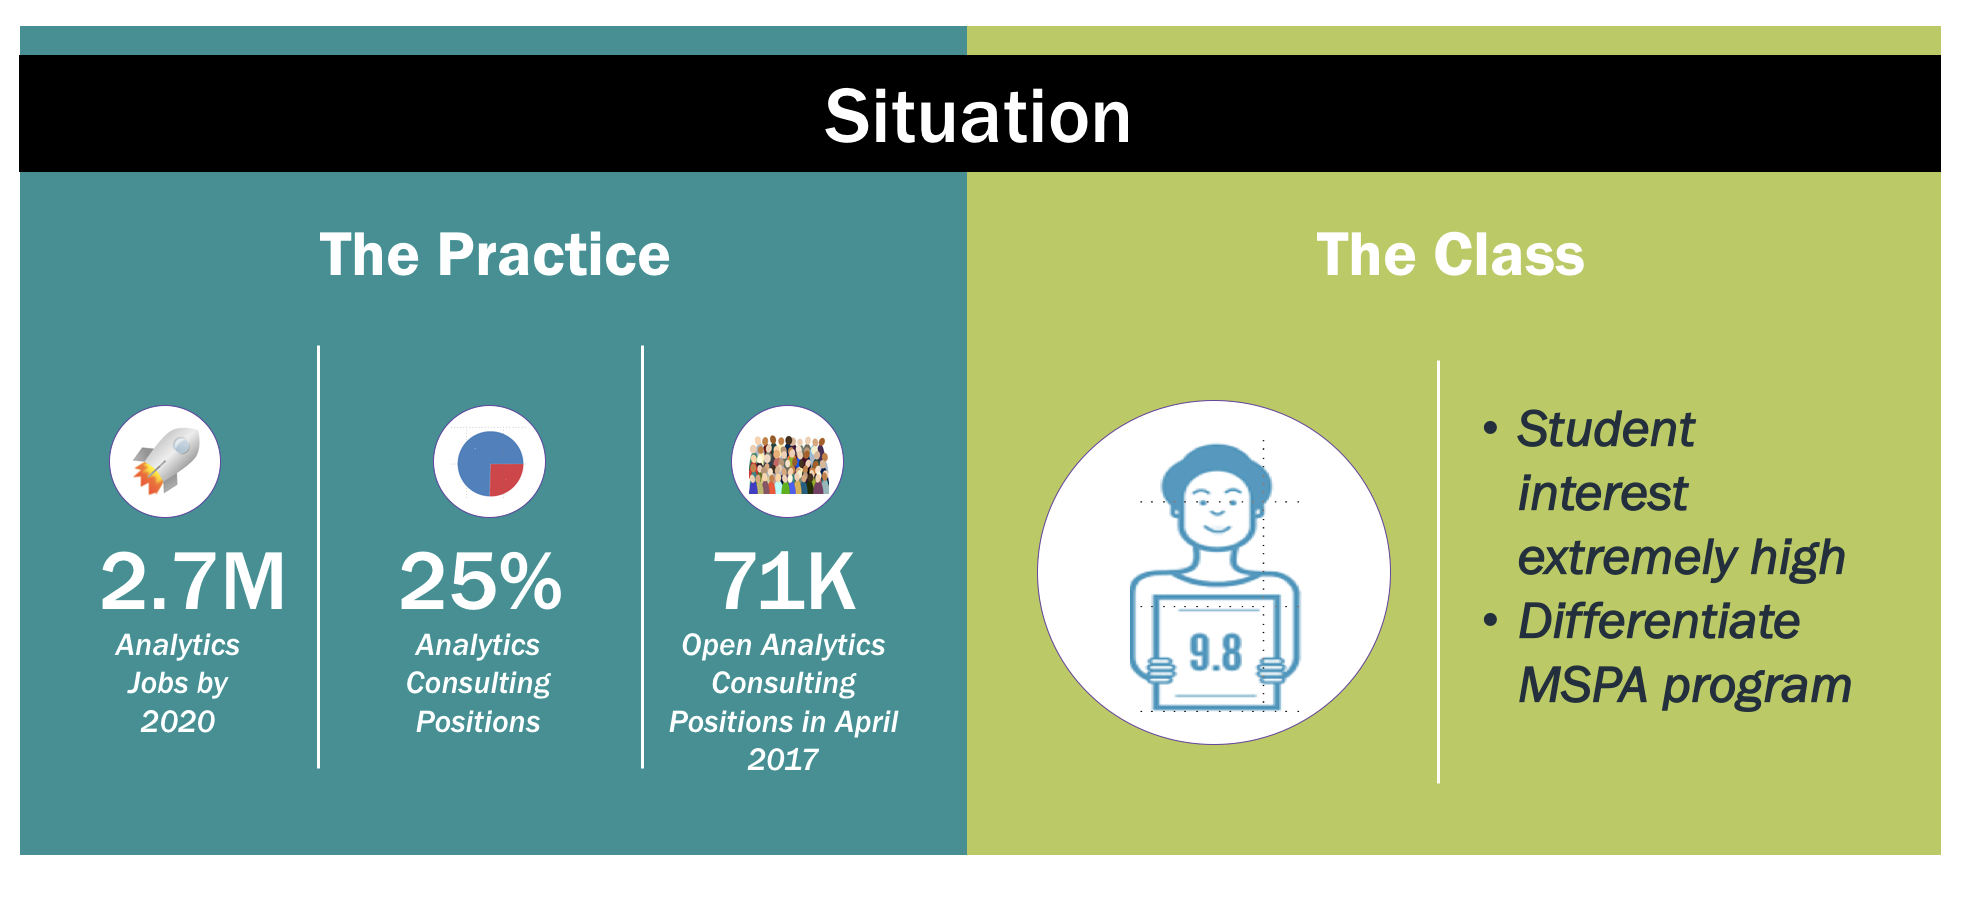 Situation: The Practice: By 2020 there will be 2.7M analytics jobs. 25% of those will be analytics consulting positions. In April 2017, there were 71,000 open positions for analytics consultants. The Classroom: student interest in careers in analytics consulting is extremely high. To address student interests and to differentiate Northwestern's MSPA program we created a class on analytics consulting.